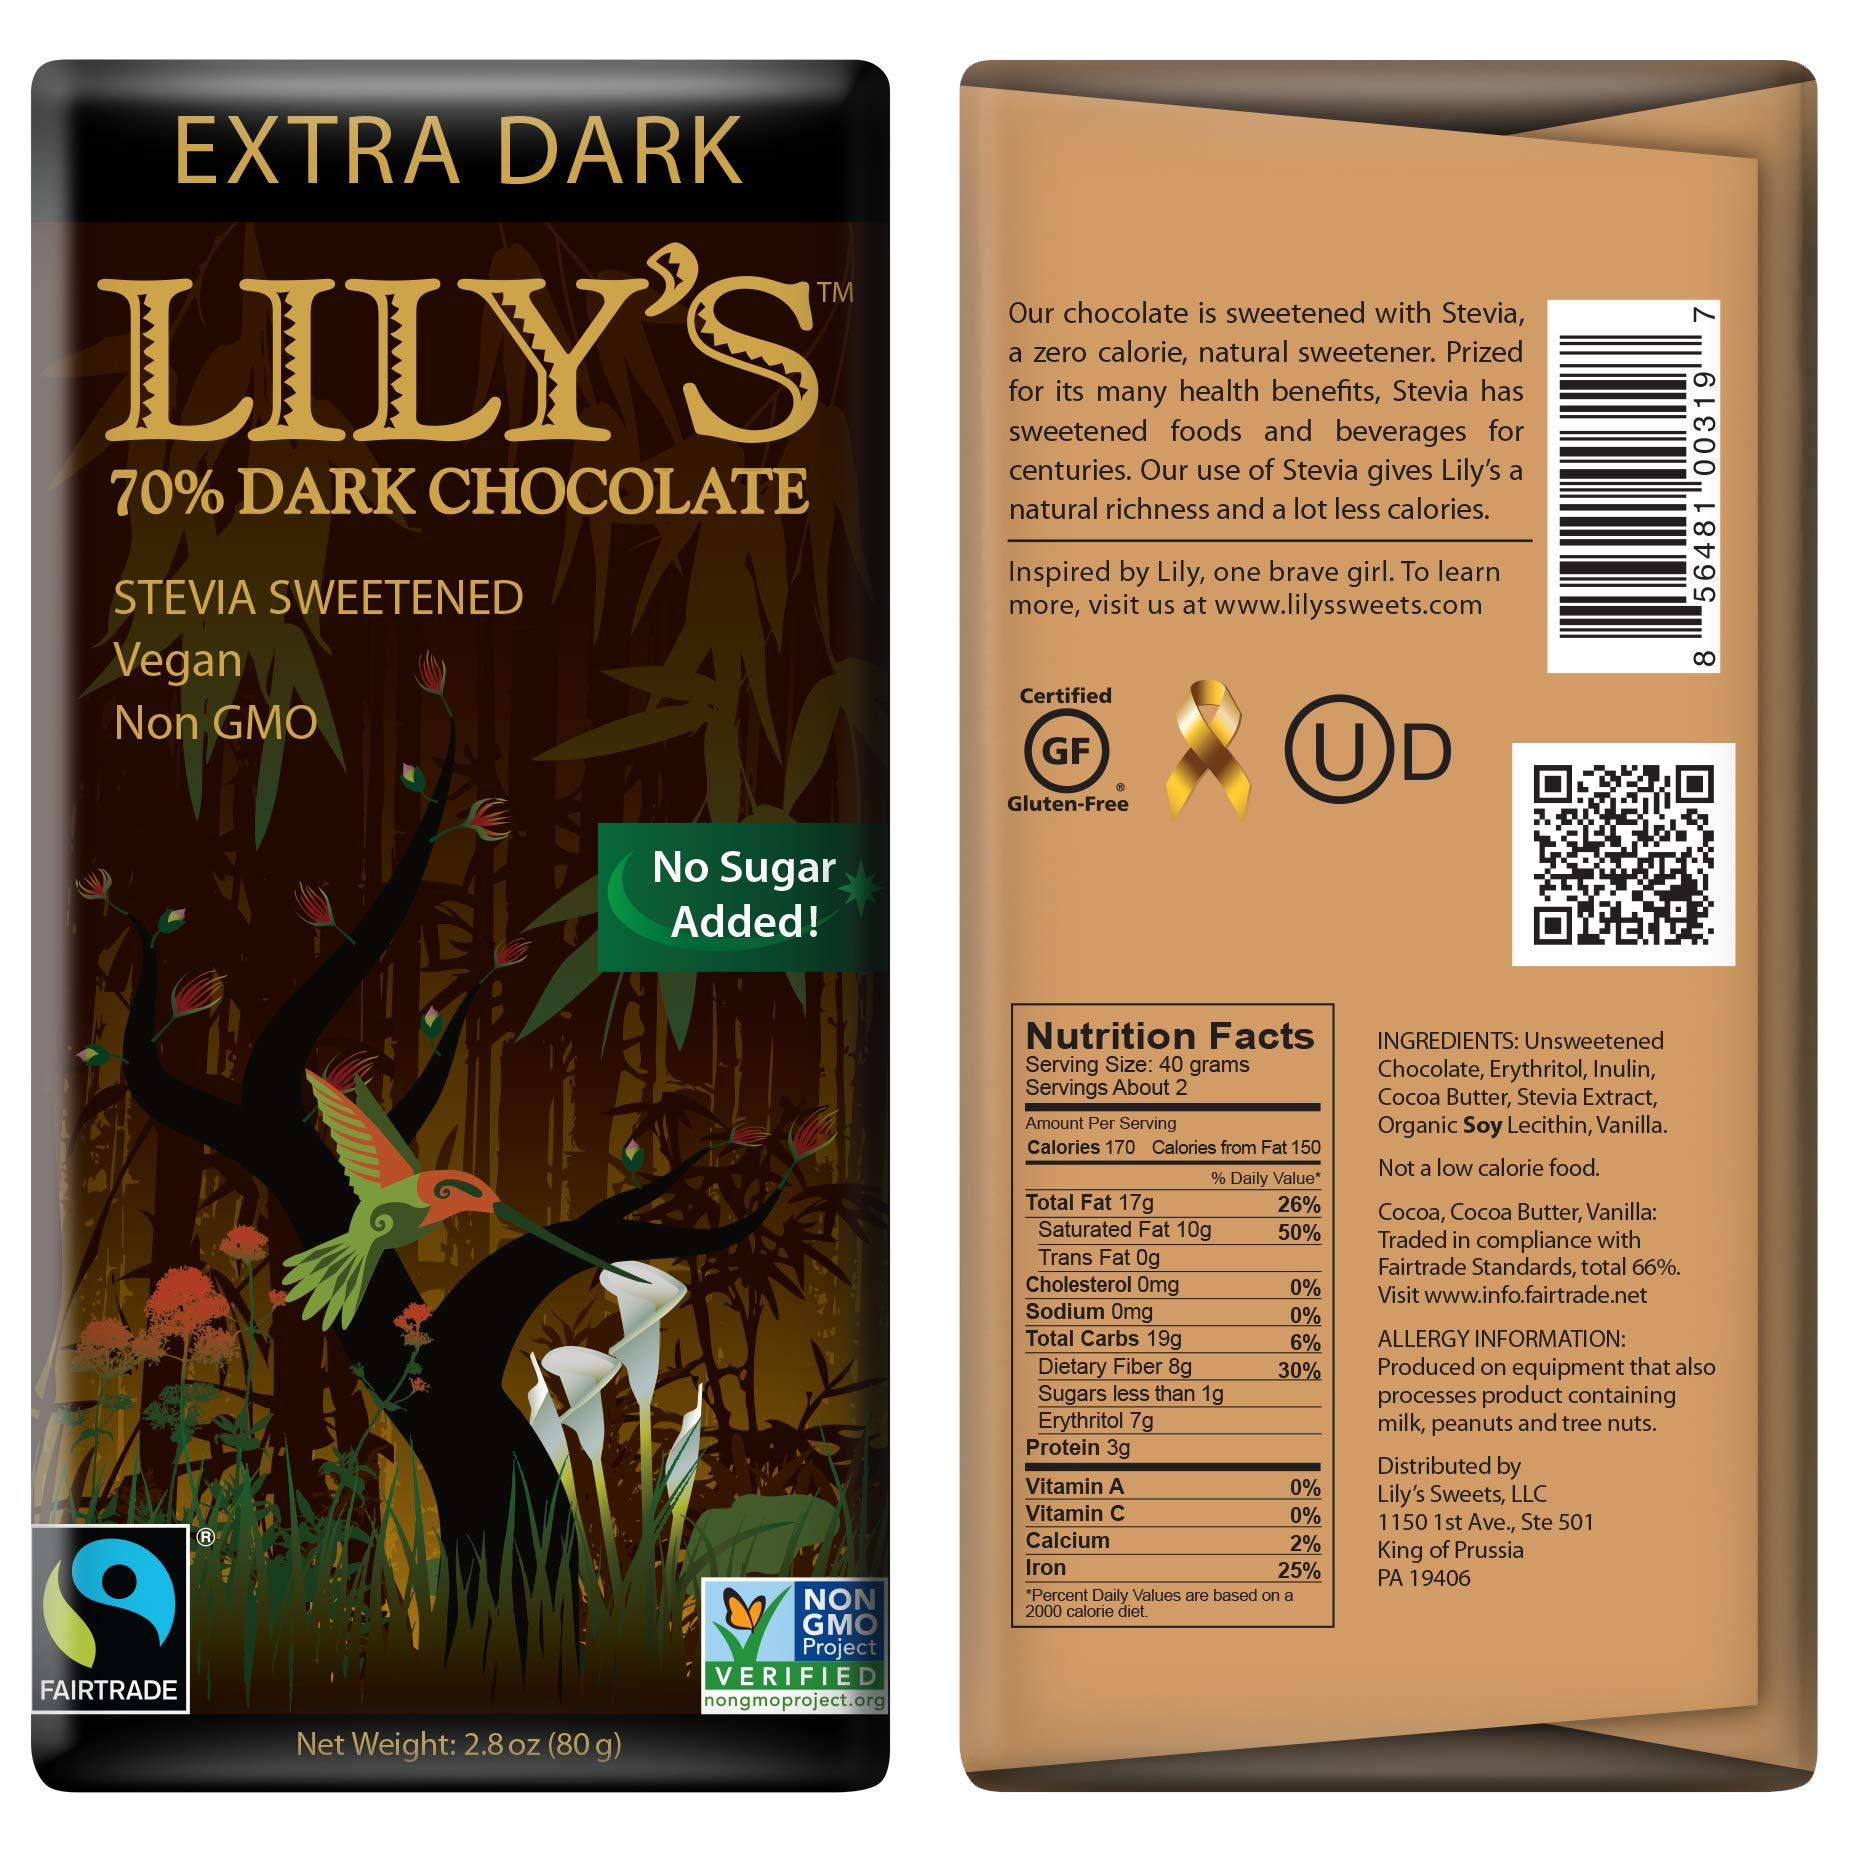 Extra Dark Chocolate Bar by Lily's Sweets | Stevia Sweetened, No Added Sugar, Low-Carb, Keto Friendly | 70% Cacao | Fair Trade, Gluten-Free & Non-GMO | 3 ounce, 4-Pack by Lily's (Image #2)